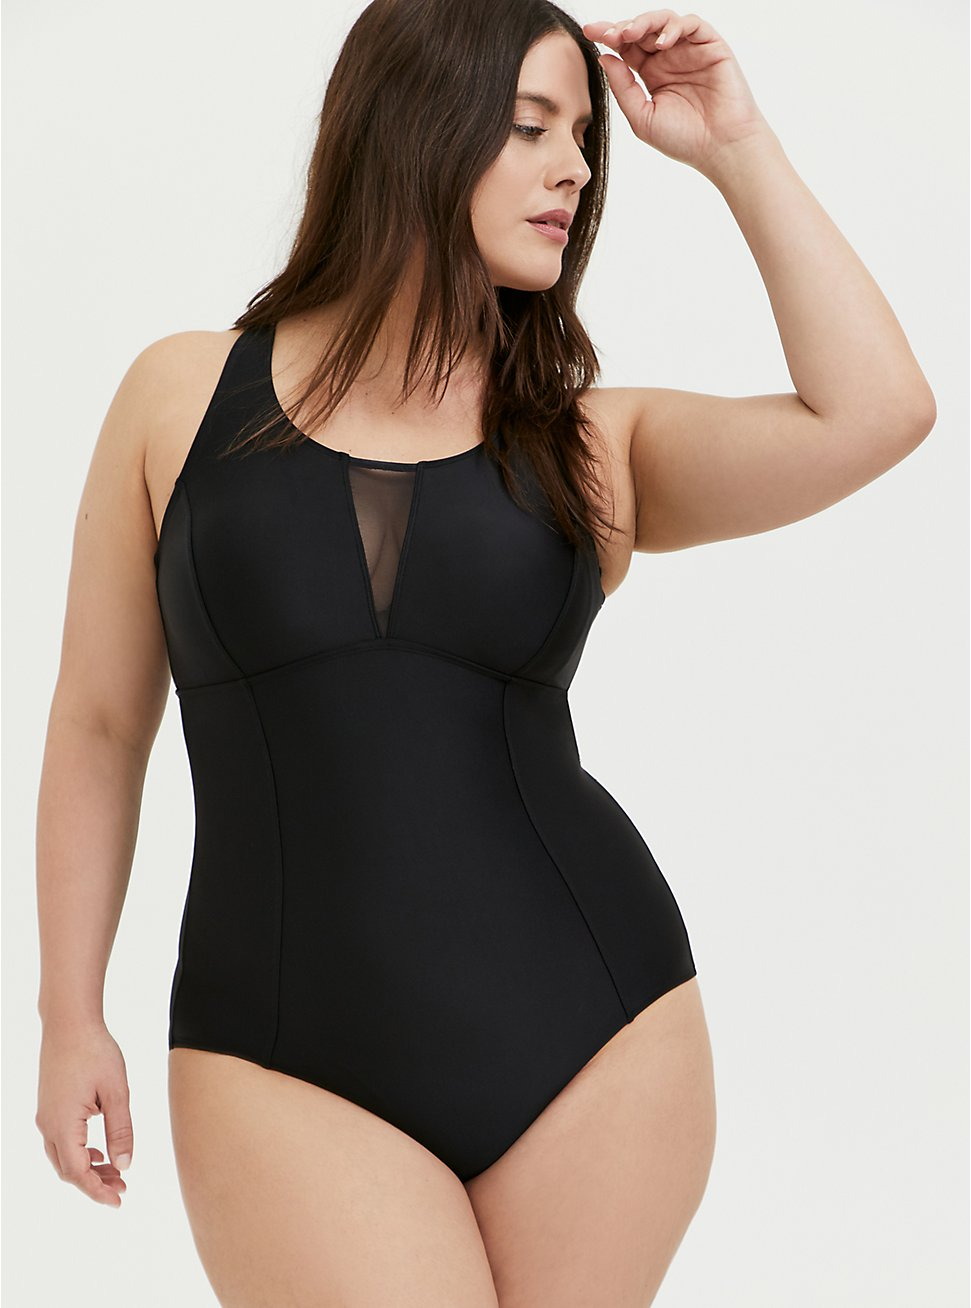 Black Mesh Inset Keyhole Back Wireless One-Piece Swimsuit, DEEP BLACK, hi-res